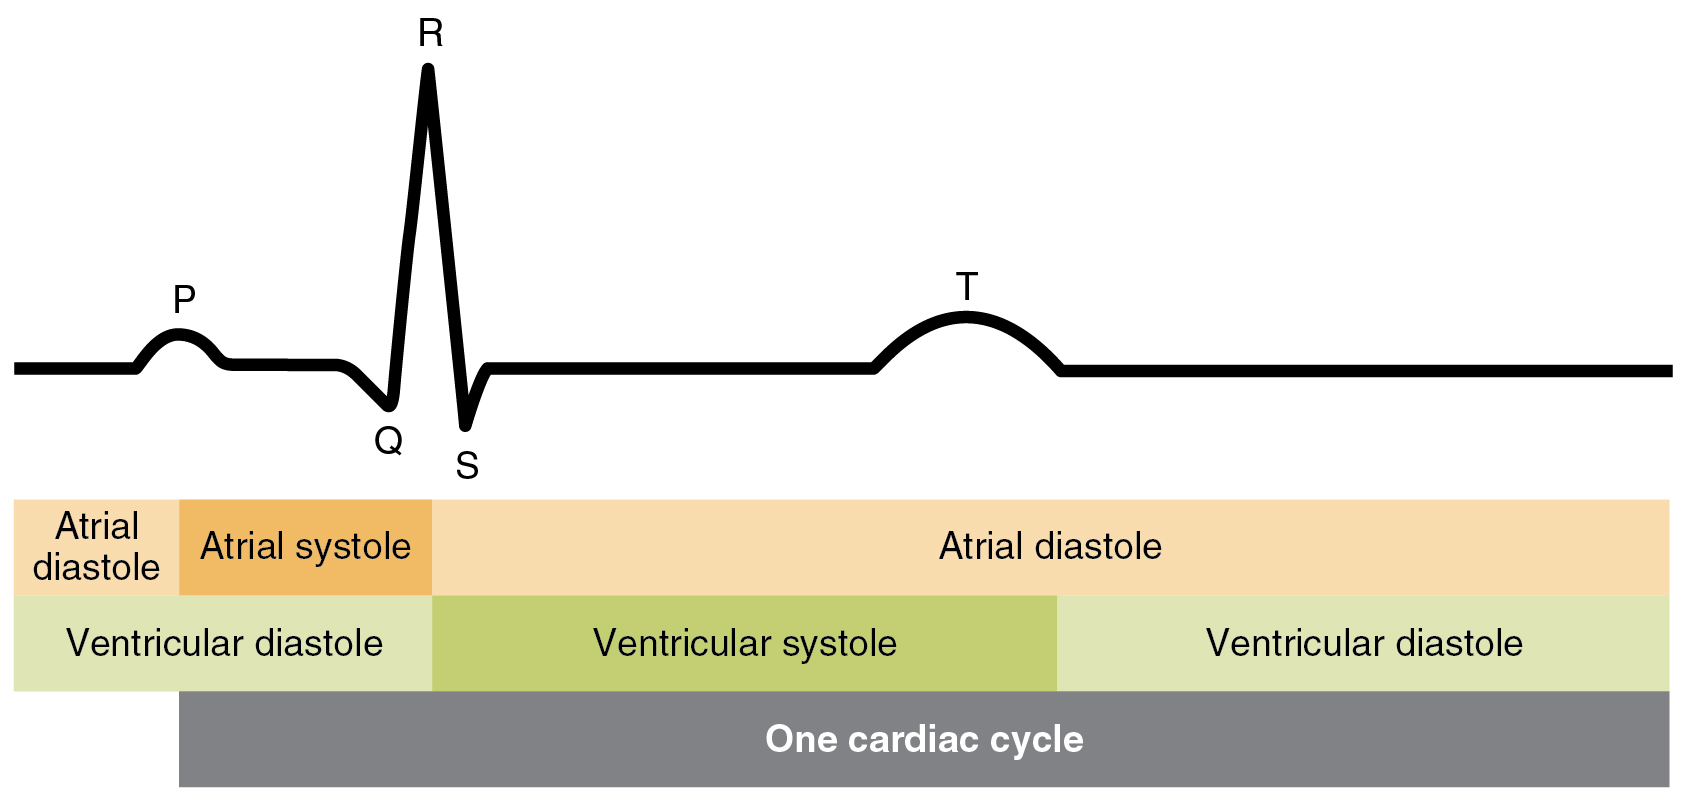 Cardiac cycle anatomy and physiology relationship between the cardiac cycle and ecg pooptronica Images